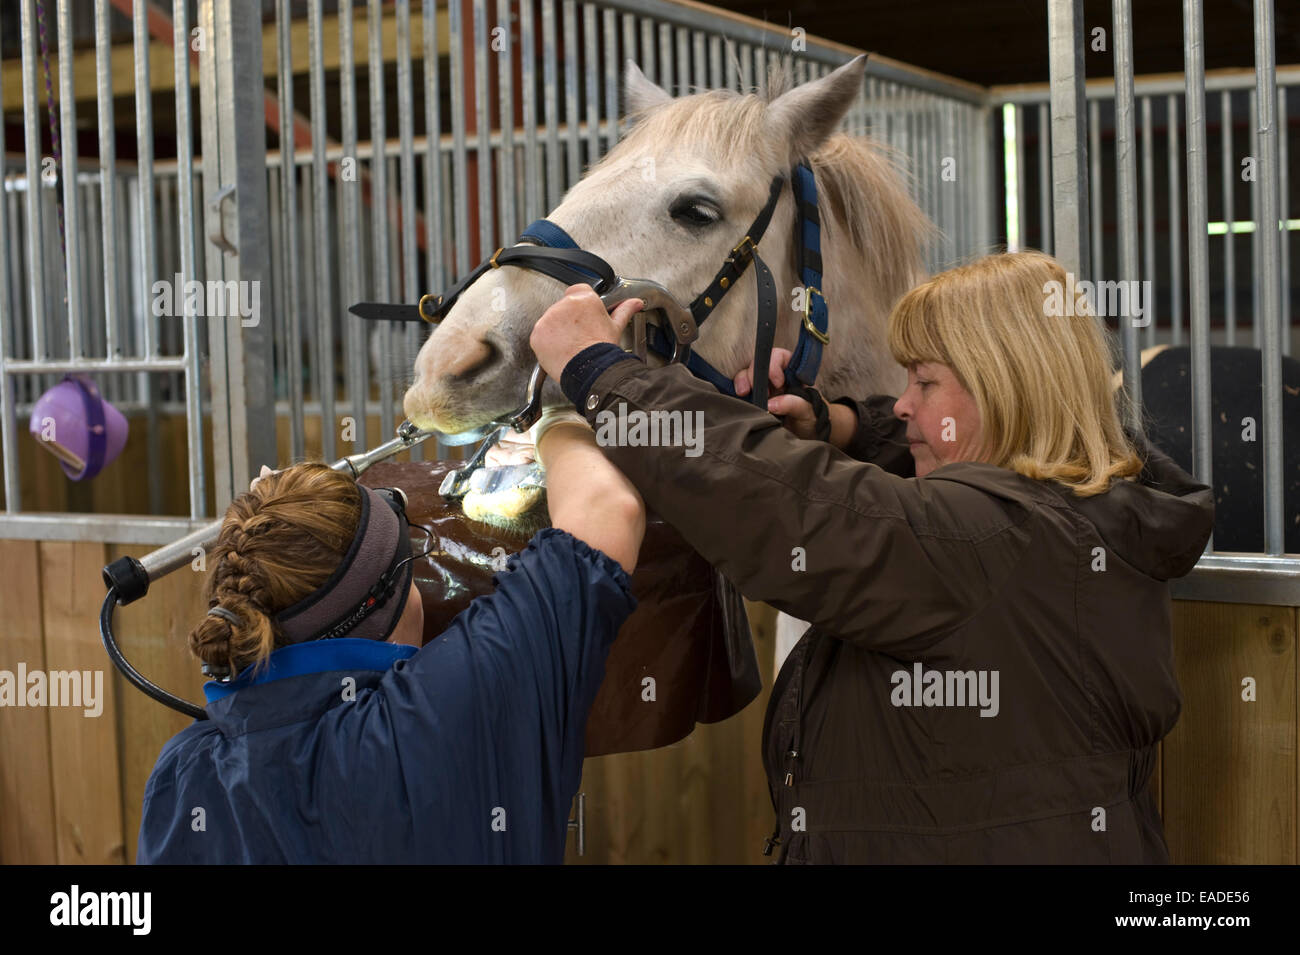 Veterinary surgeon filing teeth of horse with jaws held apart with speculum in stable. - Stock Image